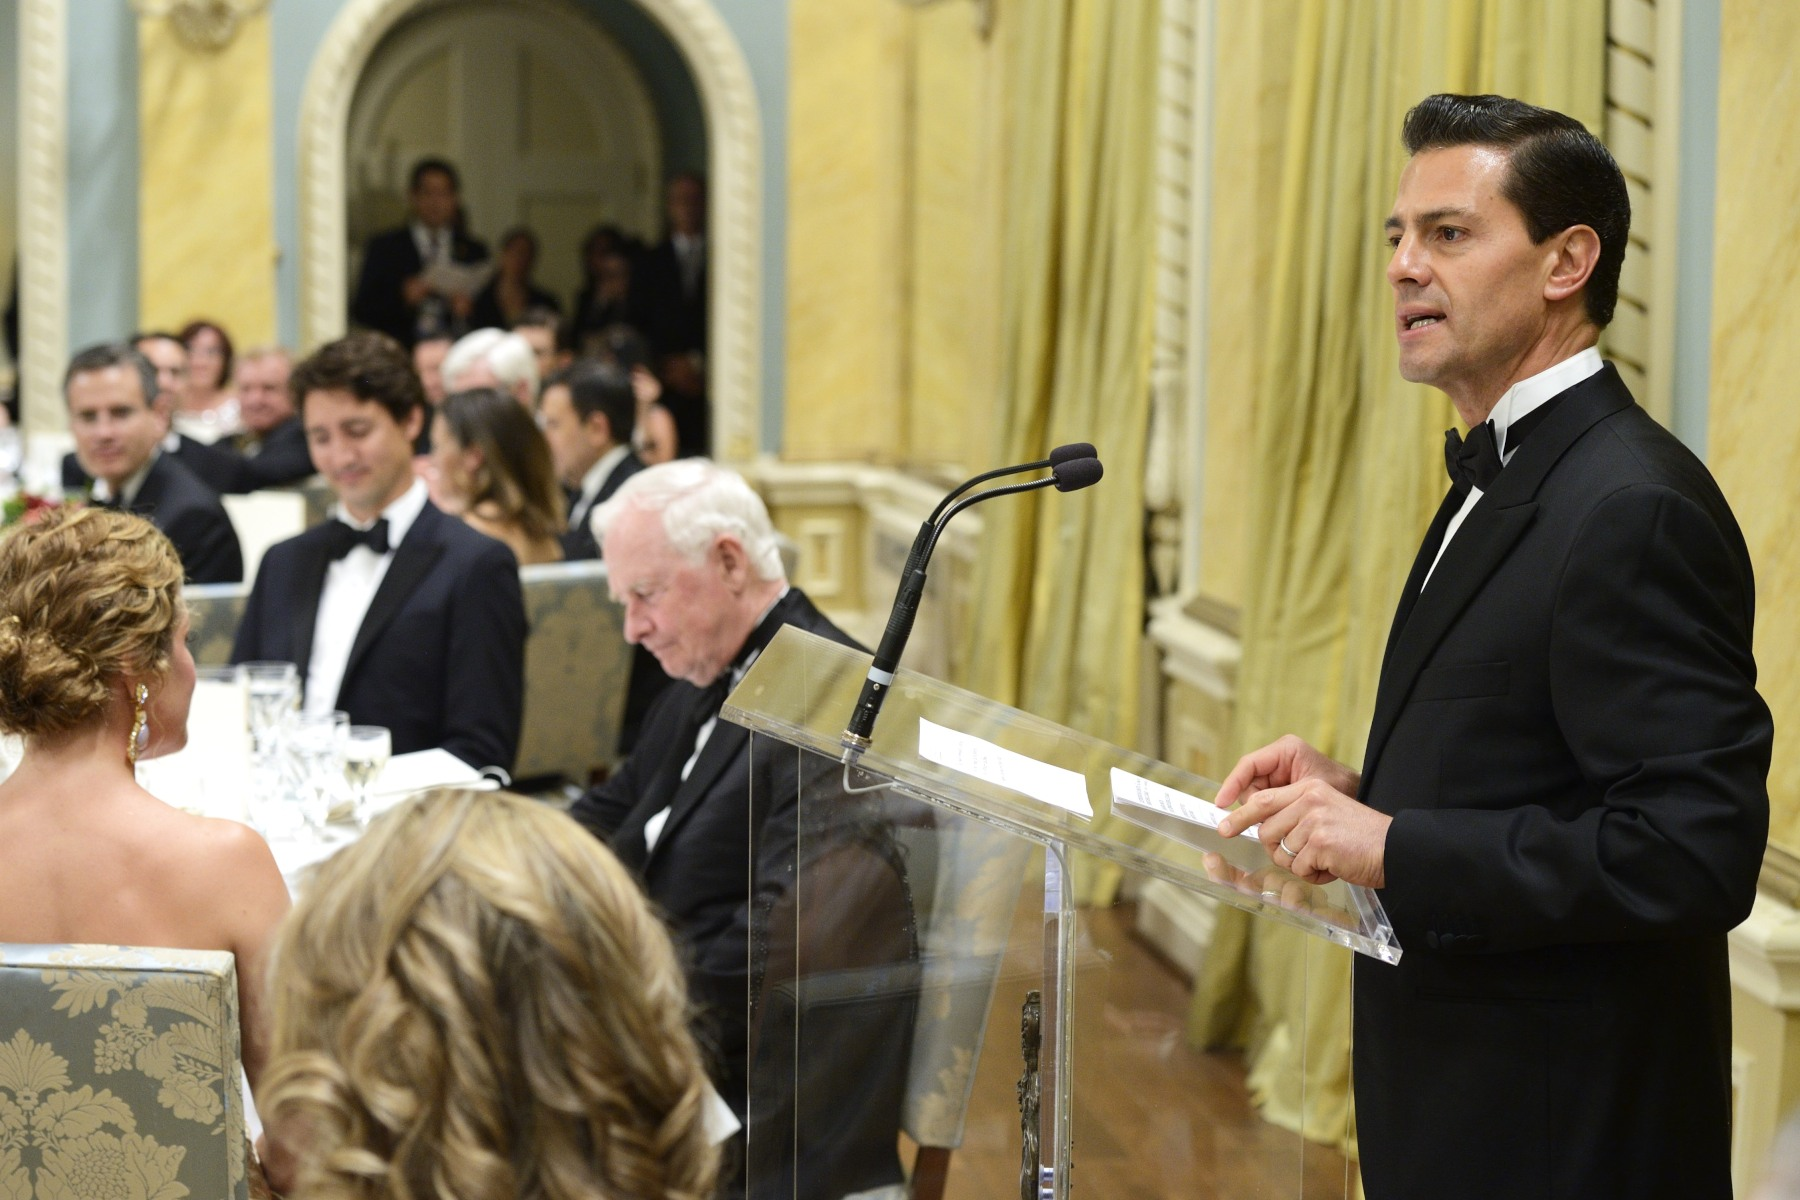 President Peña Nieto also delivered remarks.